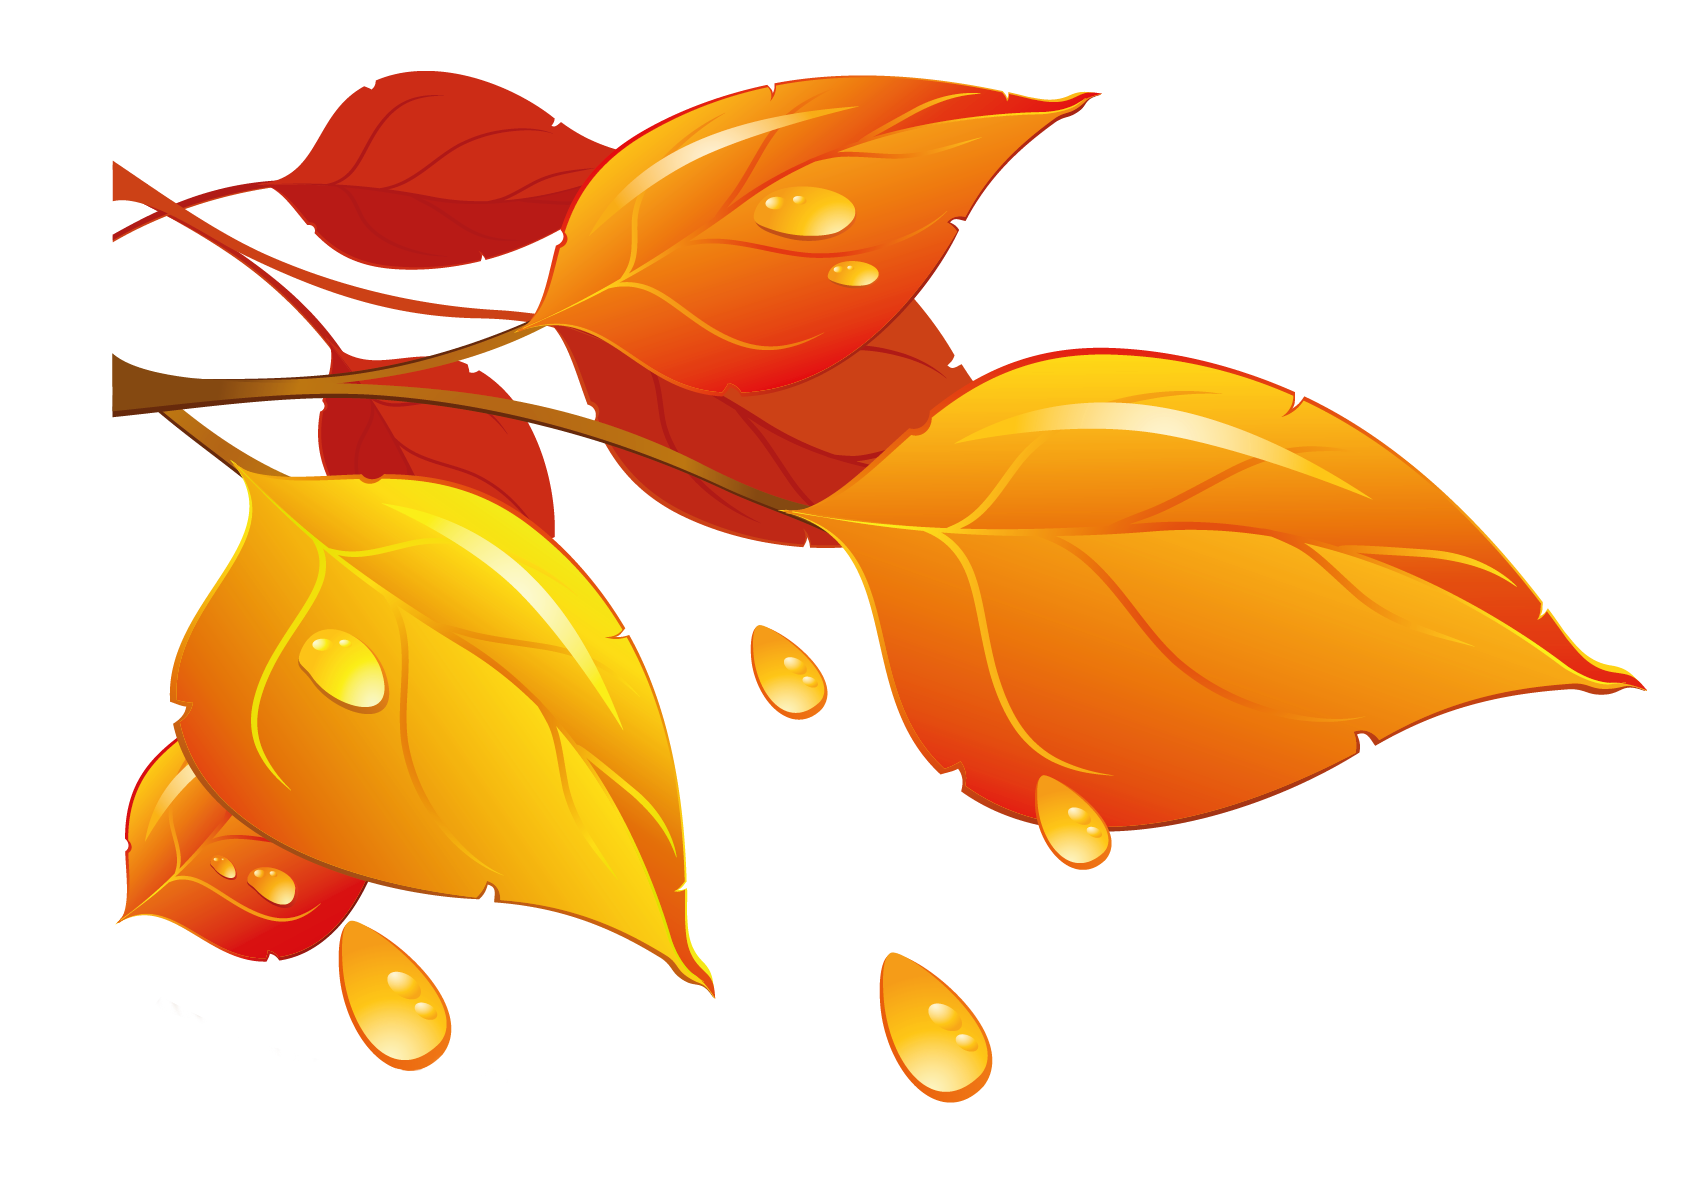 Star fall clipart svg transparent Transparent Autumn Leaves PNG Clipart | Gallery Yopriceville - High ... svg transparent